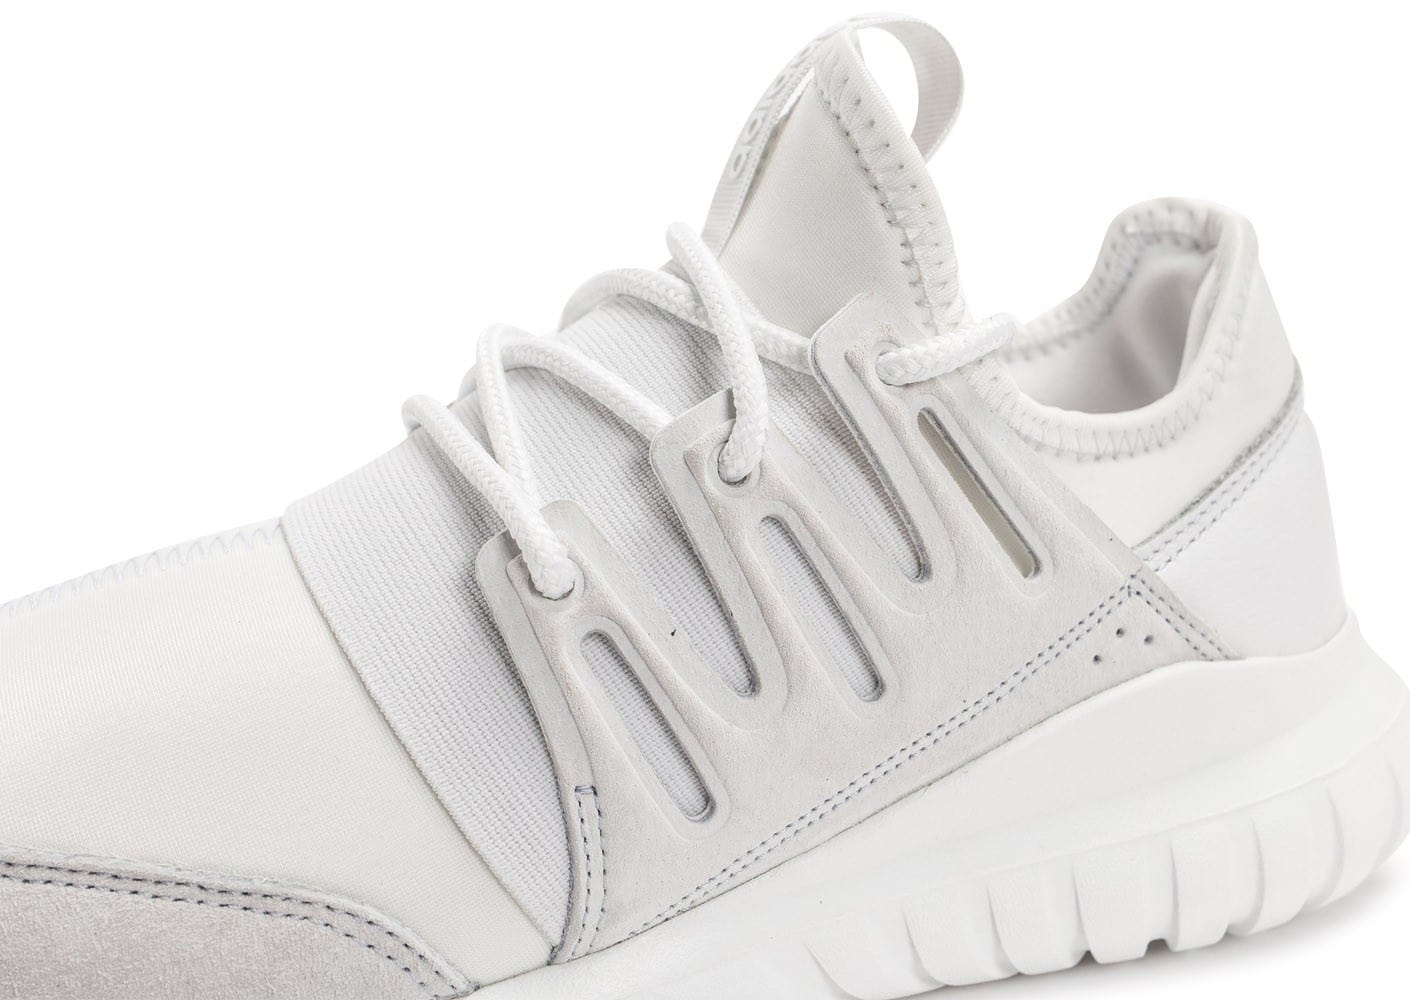 ... Chaussures adidas Tubular Radial blanche vue dessus